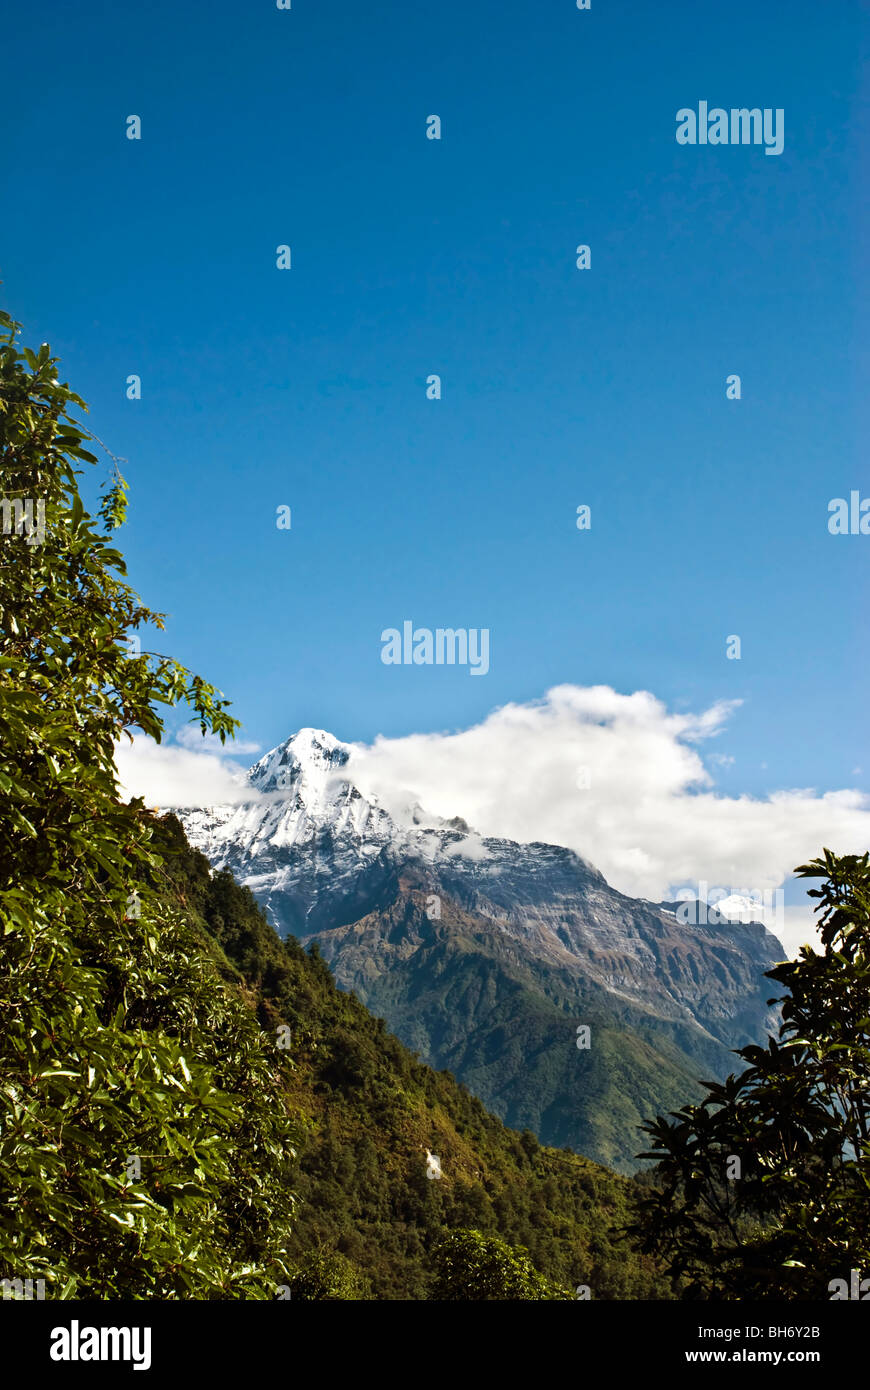 Snow Mountains Landscapes under blue sky and white clouds of Himalayas NepalLandscapes - Stock Image